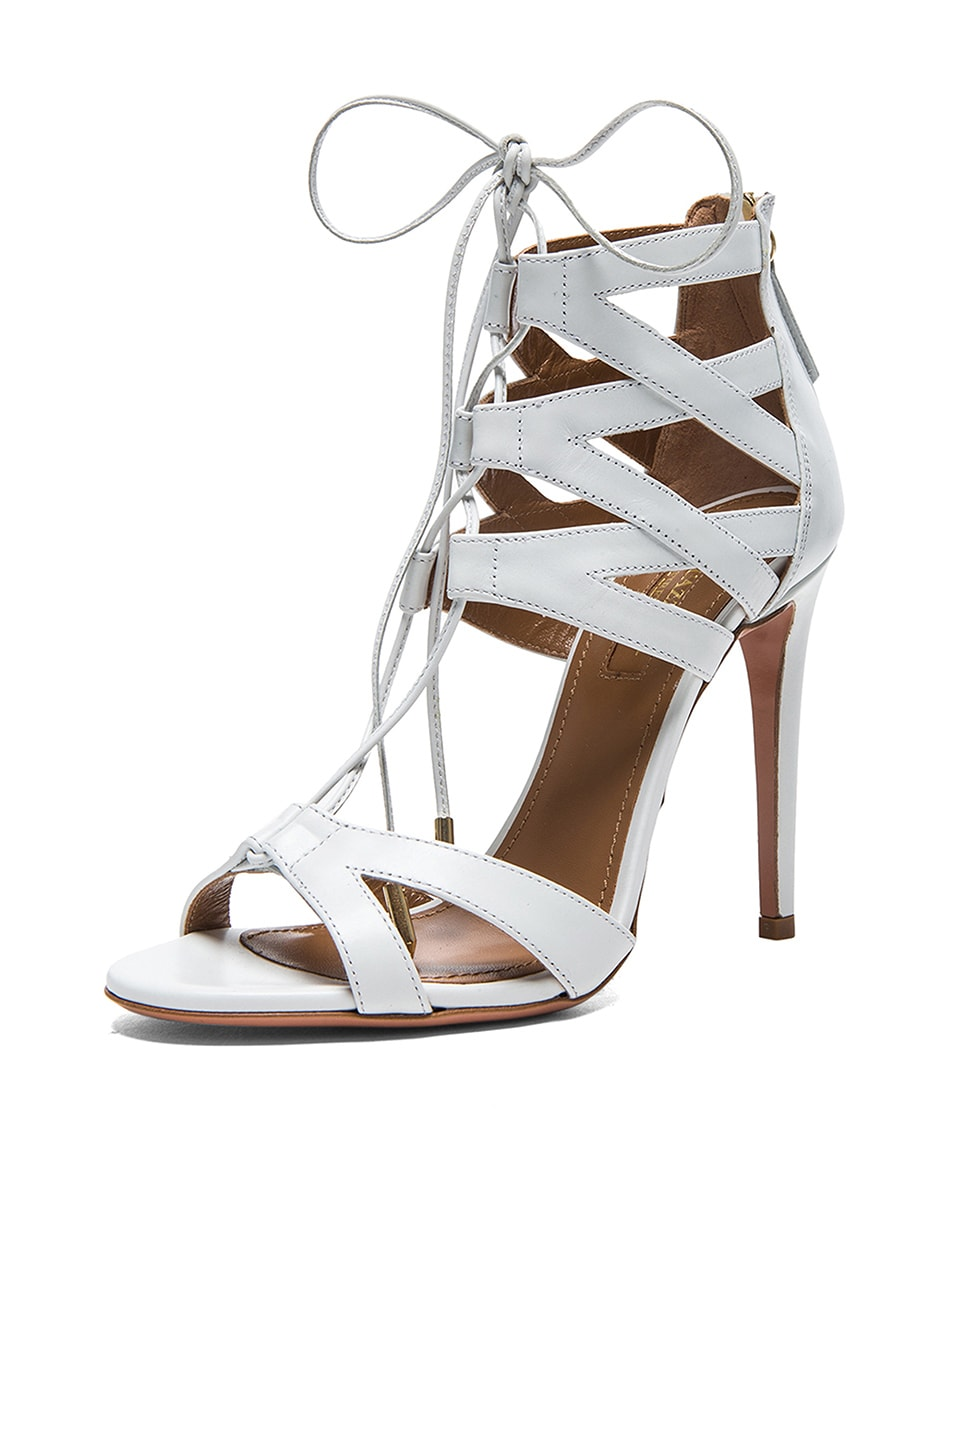 Image 2 of Aquazzura Beverly Hills Calfskin Leather Sandals in White